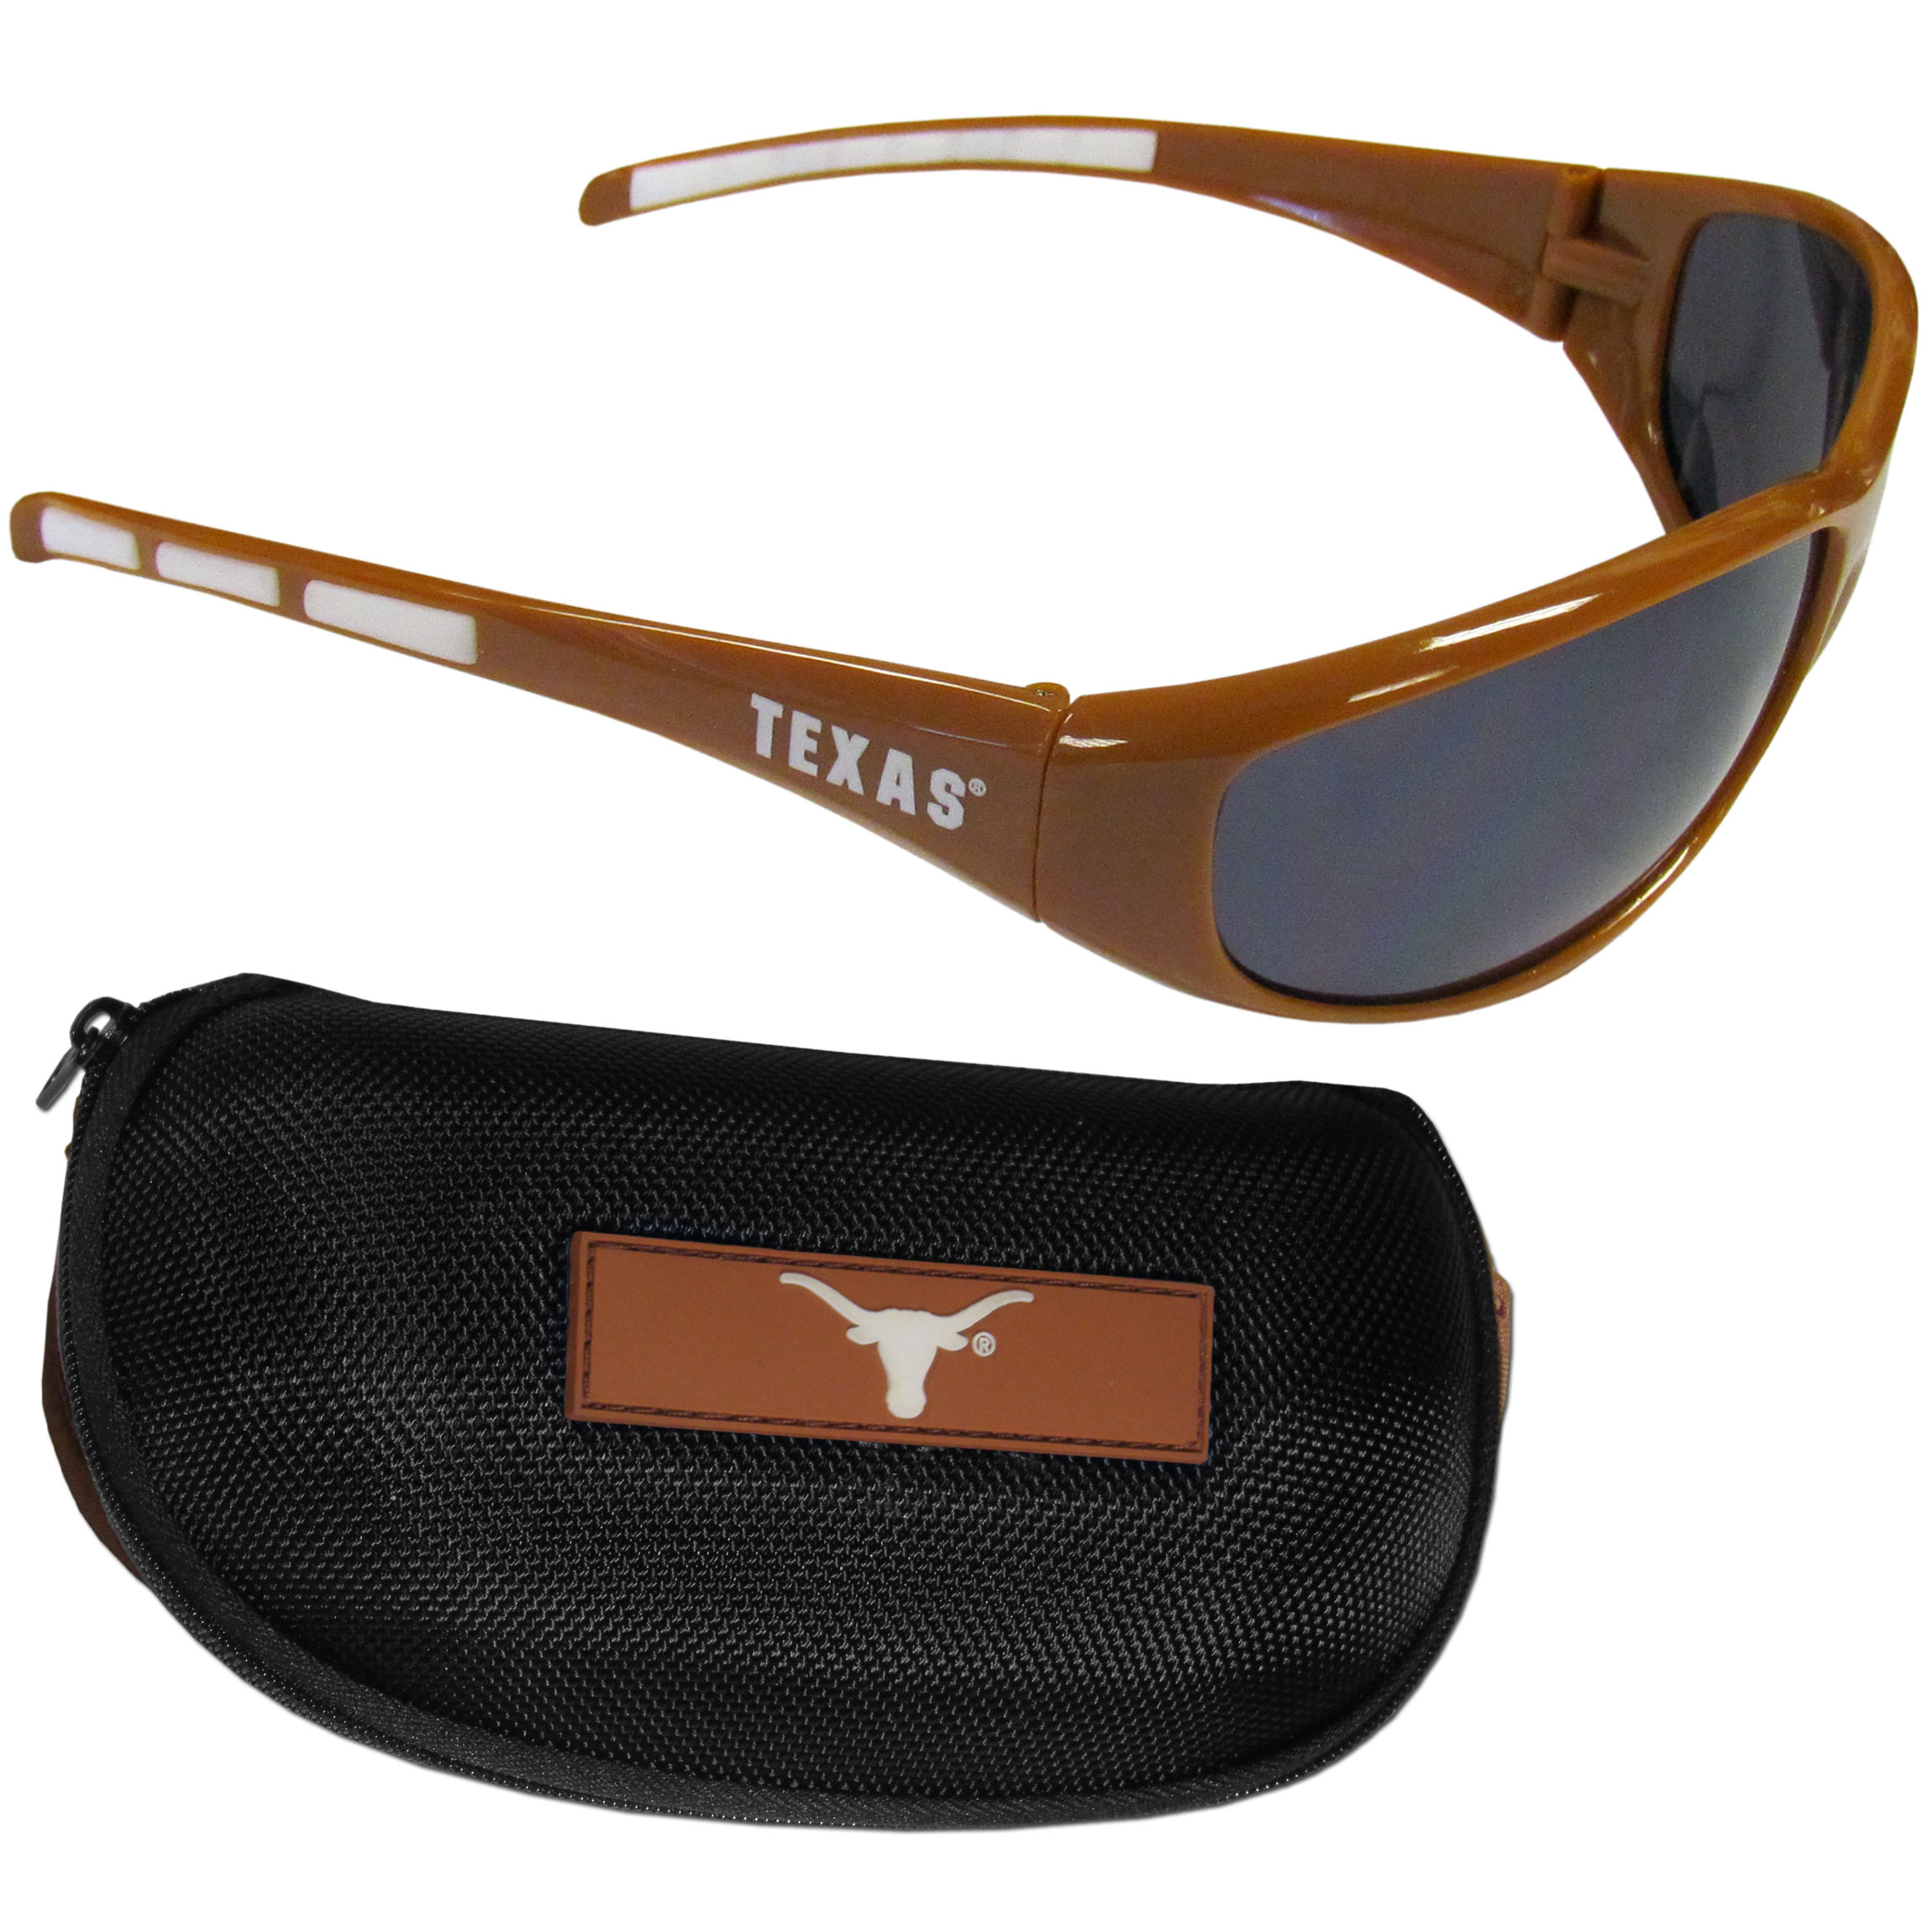 Texas Longhorns Wrap Sunglass and Case Set - This great set includes a high quality pair of Texas Longhorns wrap sunglasses and hard carrying case.